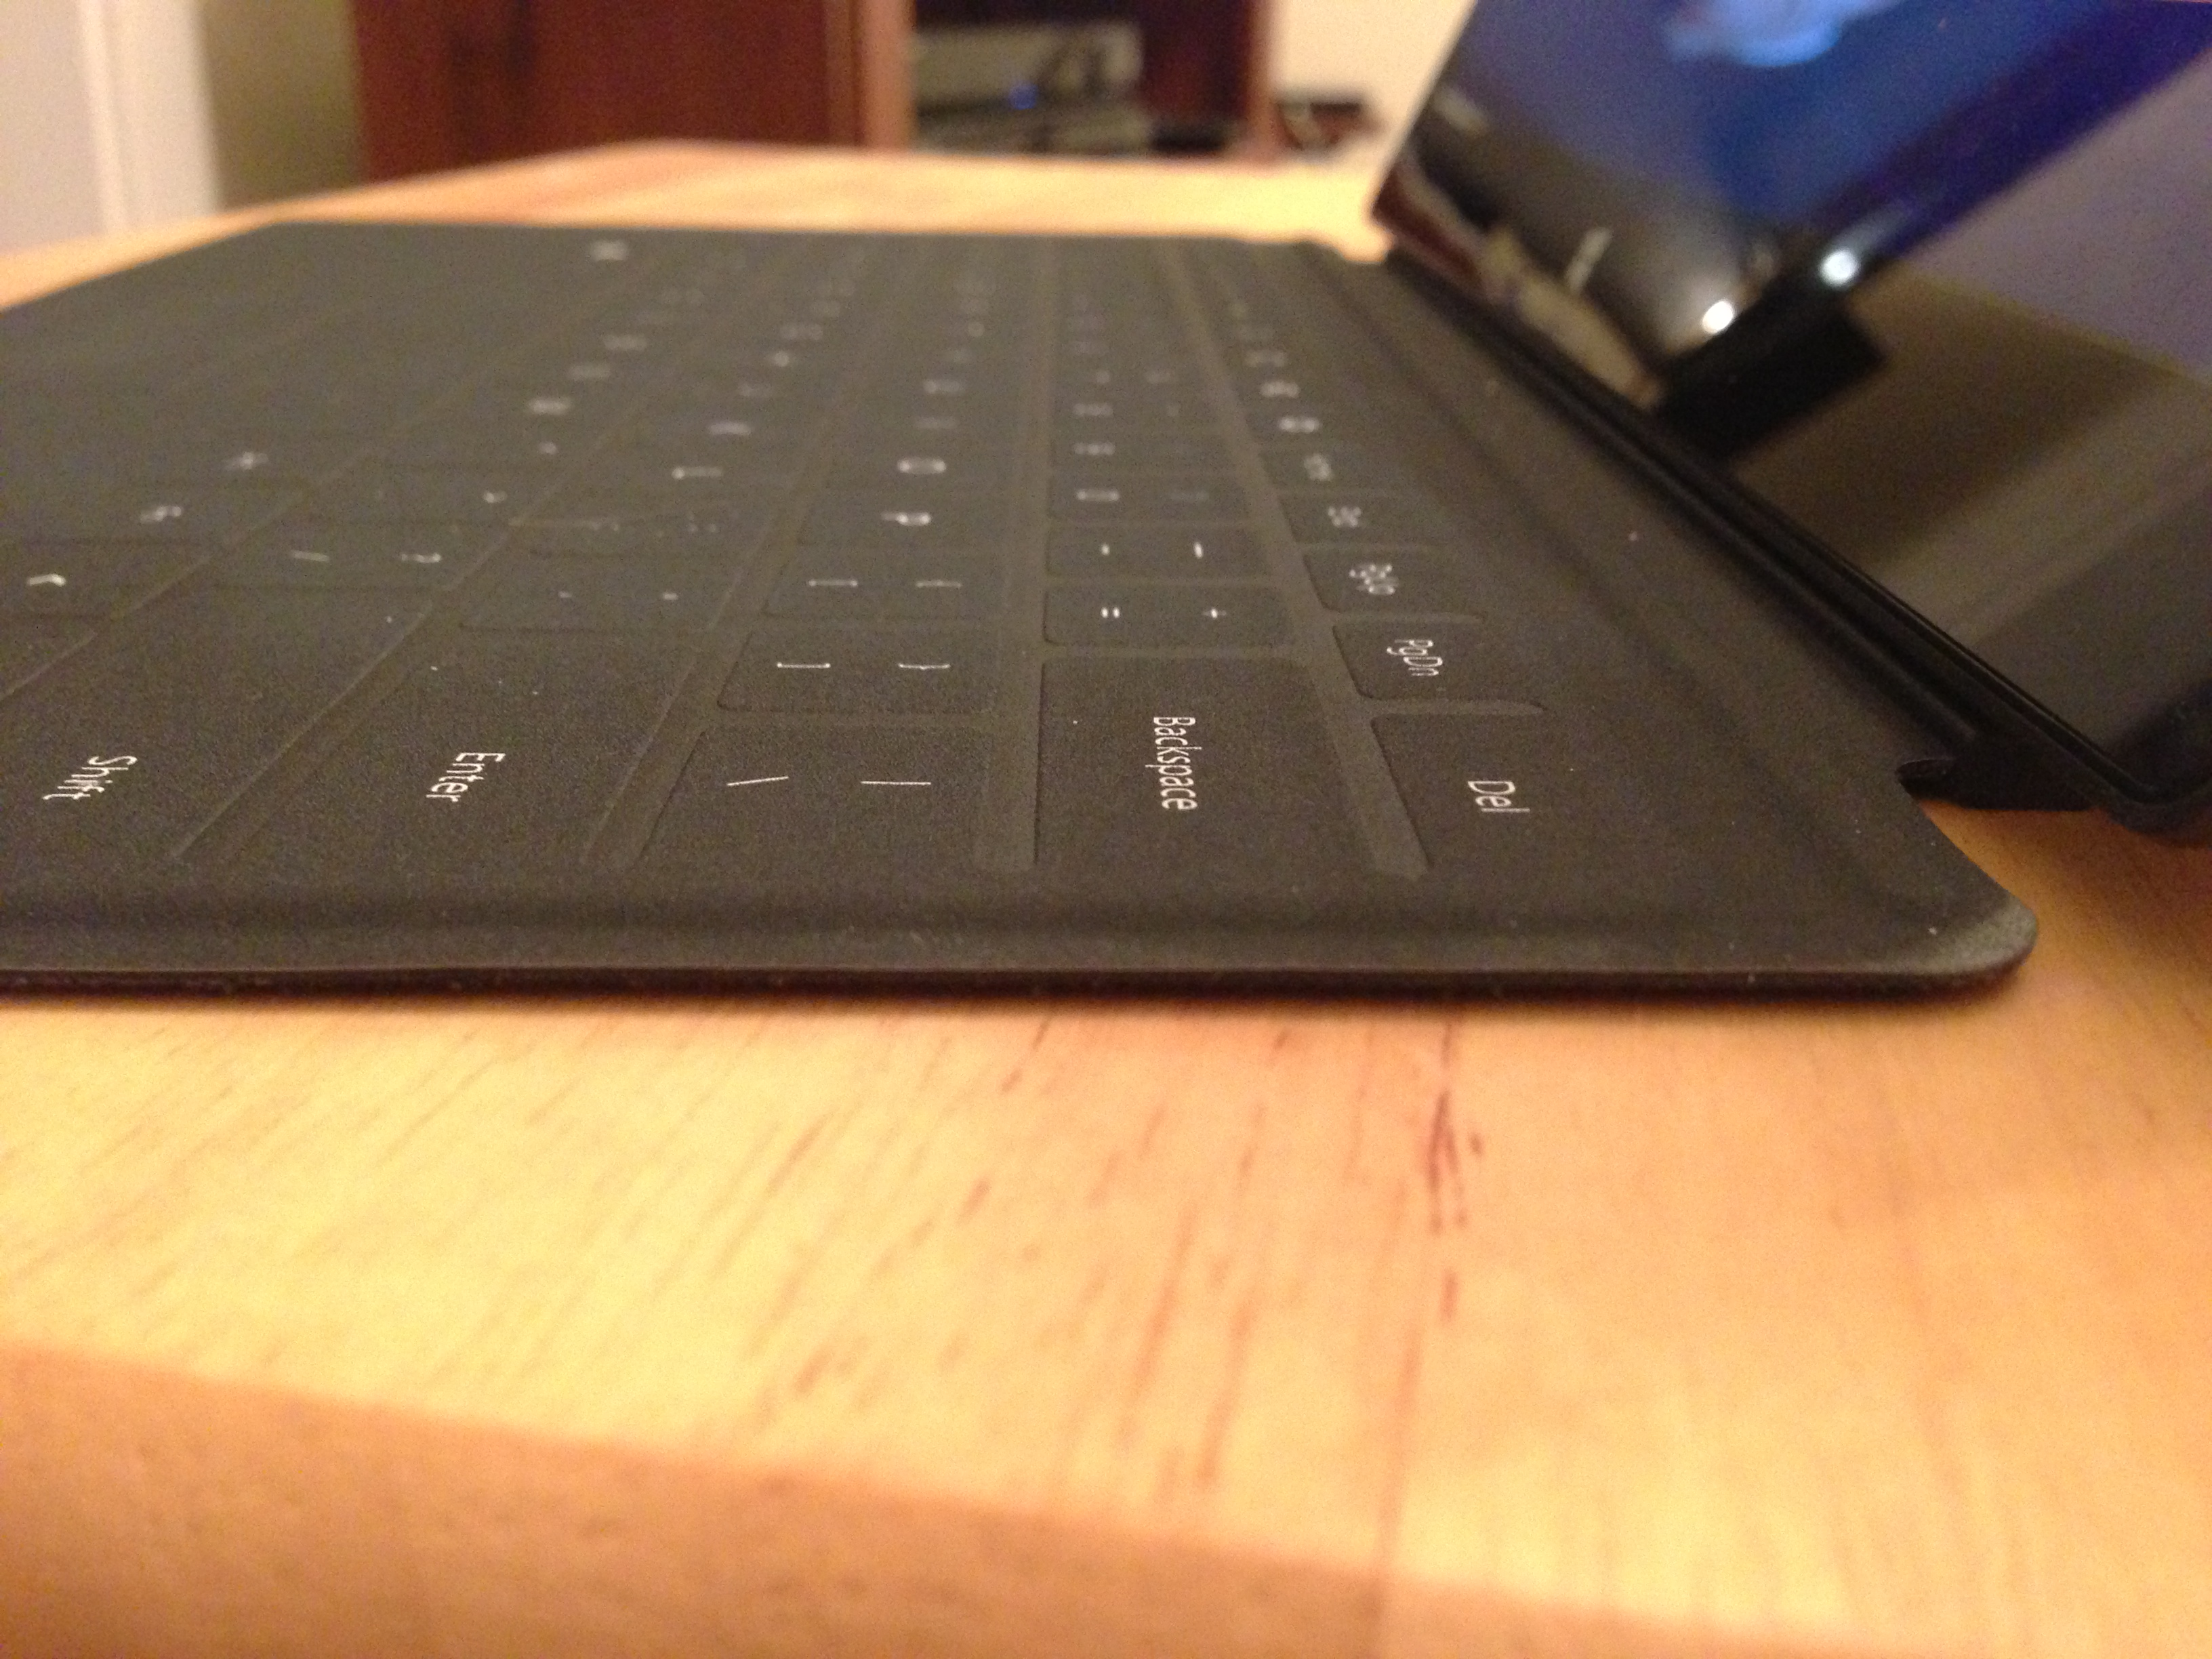 Microsoft Surface RT Review: This Thing Confuses Me